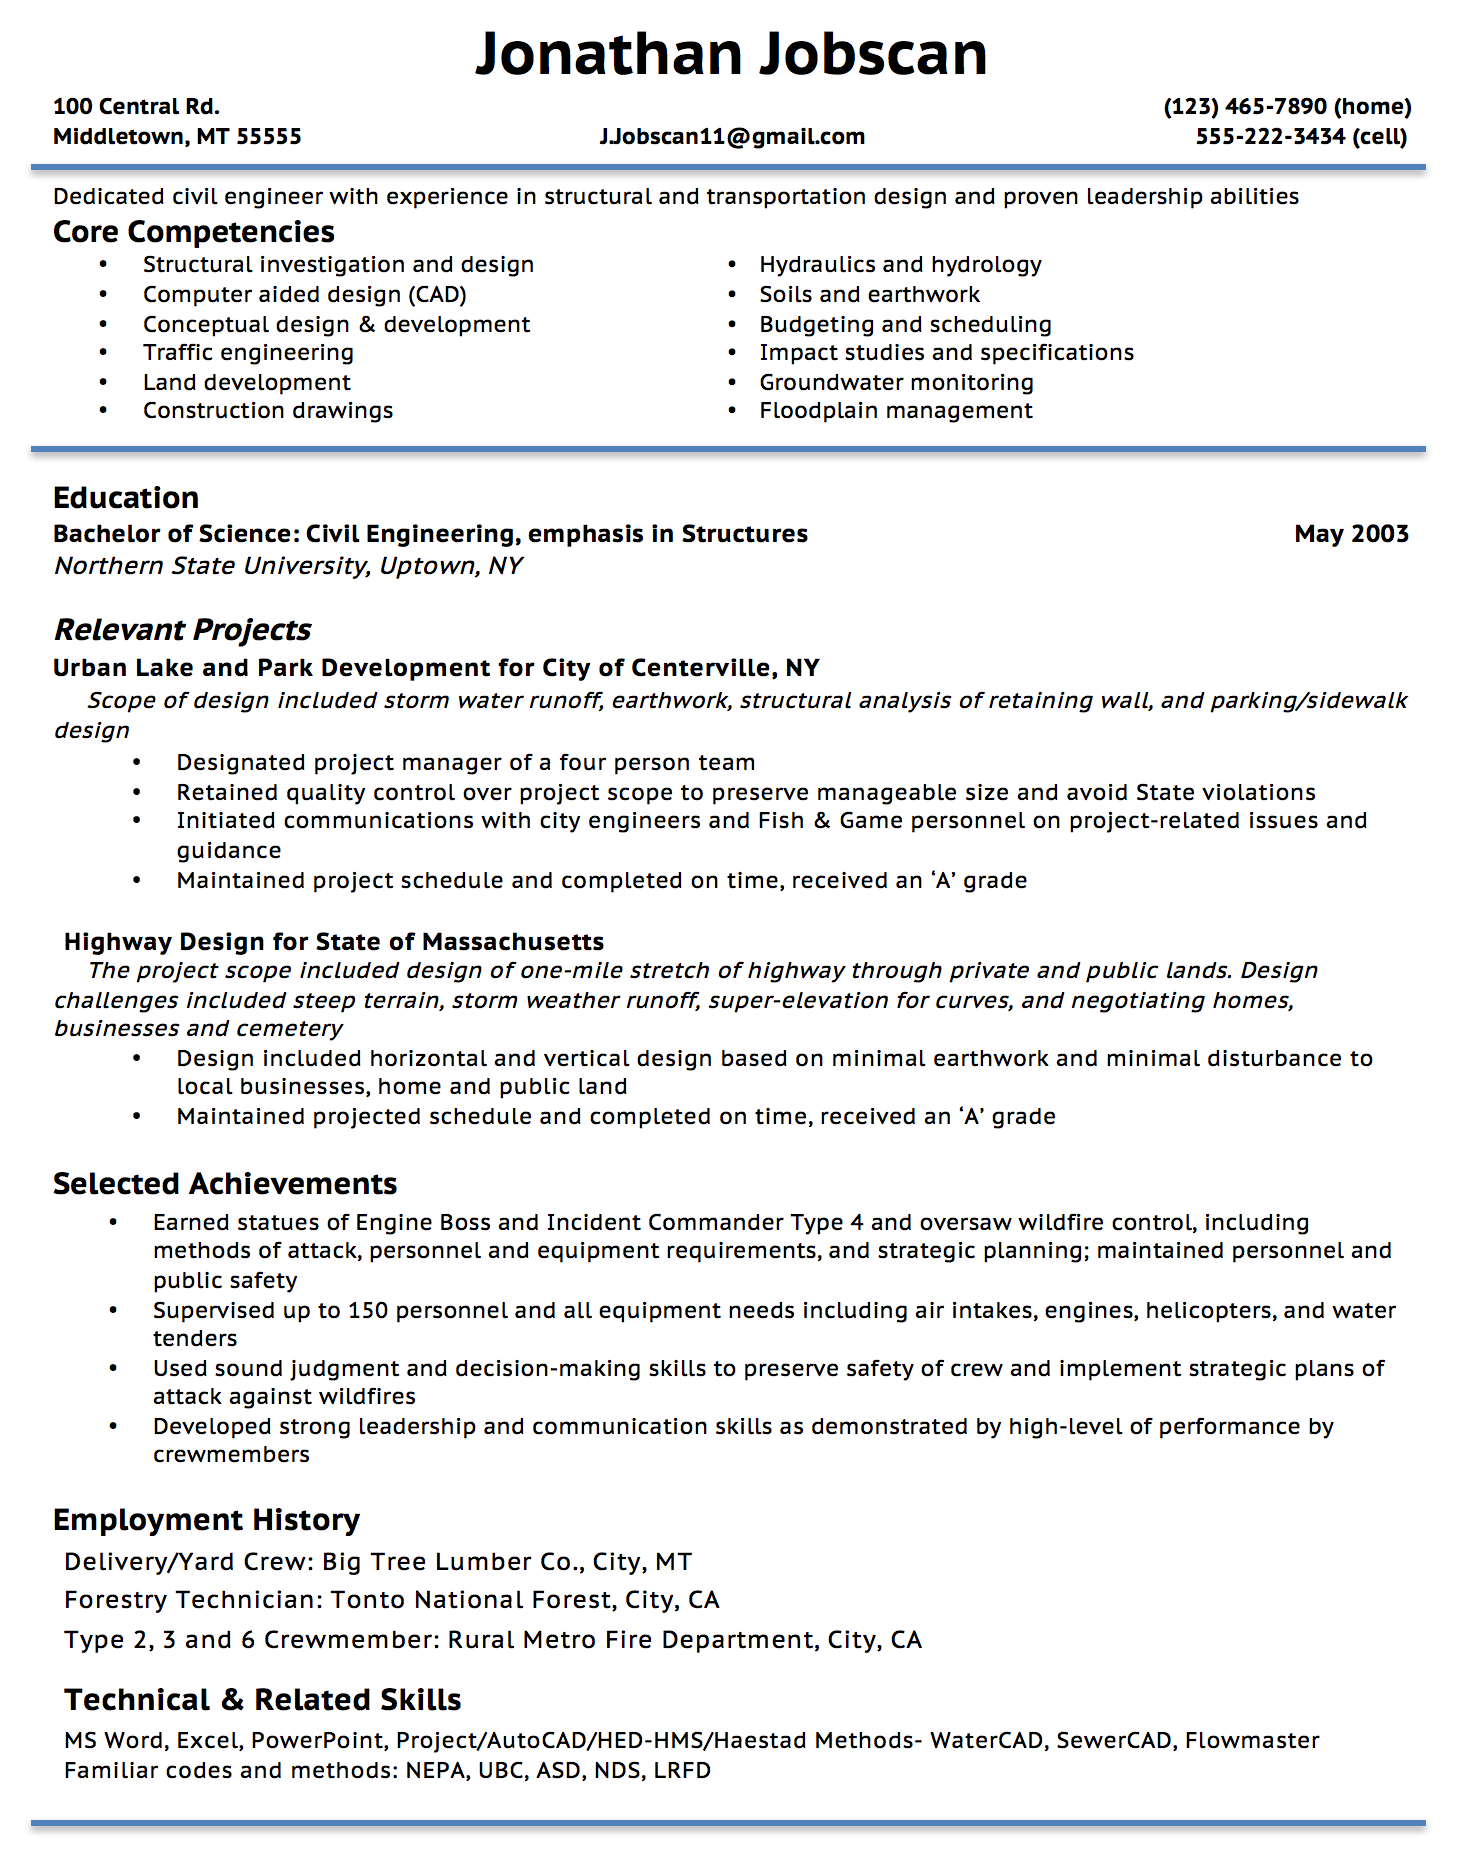 Opposenewapstandardsus  Remarkable Resume Writing Guide  Jobscan With Inspiring Example Of A Functional Resume Format With Charming Usa Jobs Resume Tips Also Best Administrative Assistant Resume In Addition Good Objective Statements For Resumes And How To Build A Resume In Word As Well As Counseling Resume Additionally Resume Intro From Jobscanco With Opposenewapstandardsus  Inspiring Resume Writing Guide  Jobscan With Charming Example Of A Functional Resume Format And Remarkable Usa Jobs Resume Tips Also Best Administrative Assistant Resume In Addition Good Objective Statements For Resumes From Jobscanco